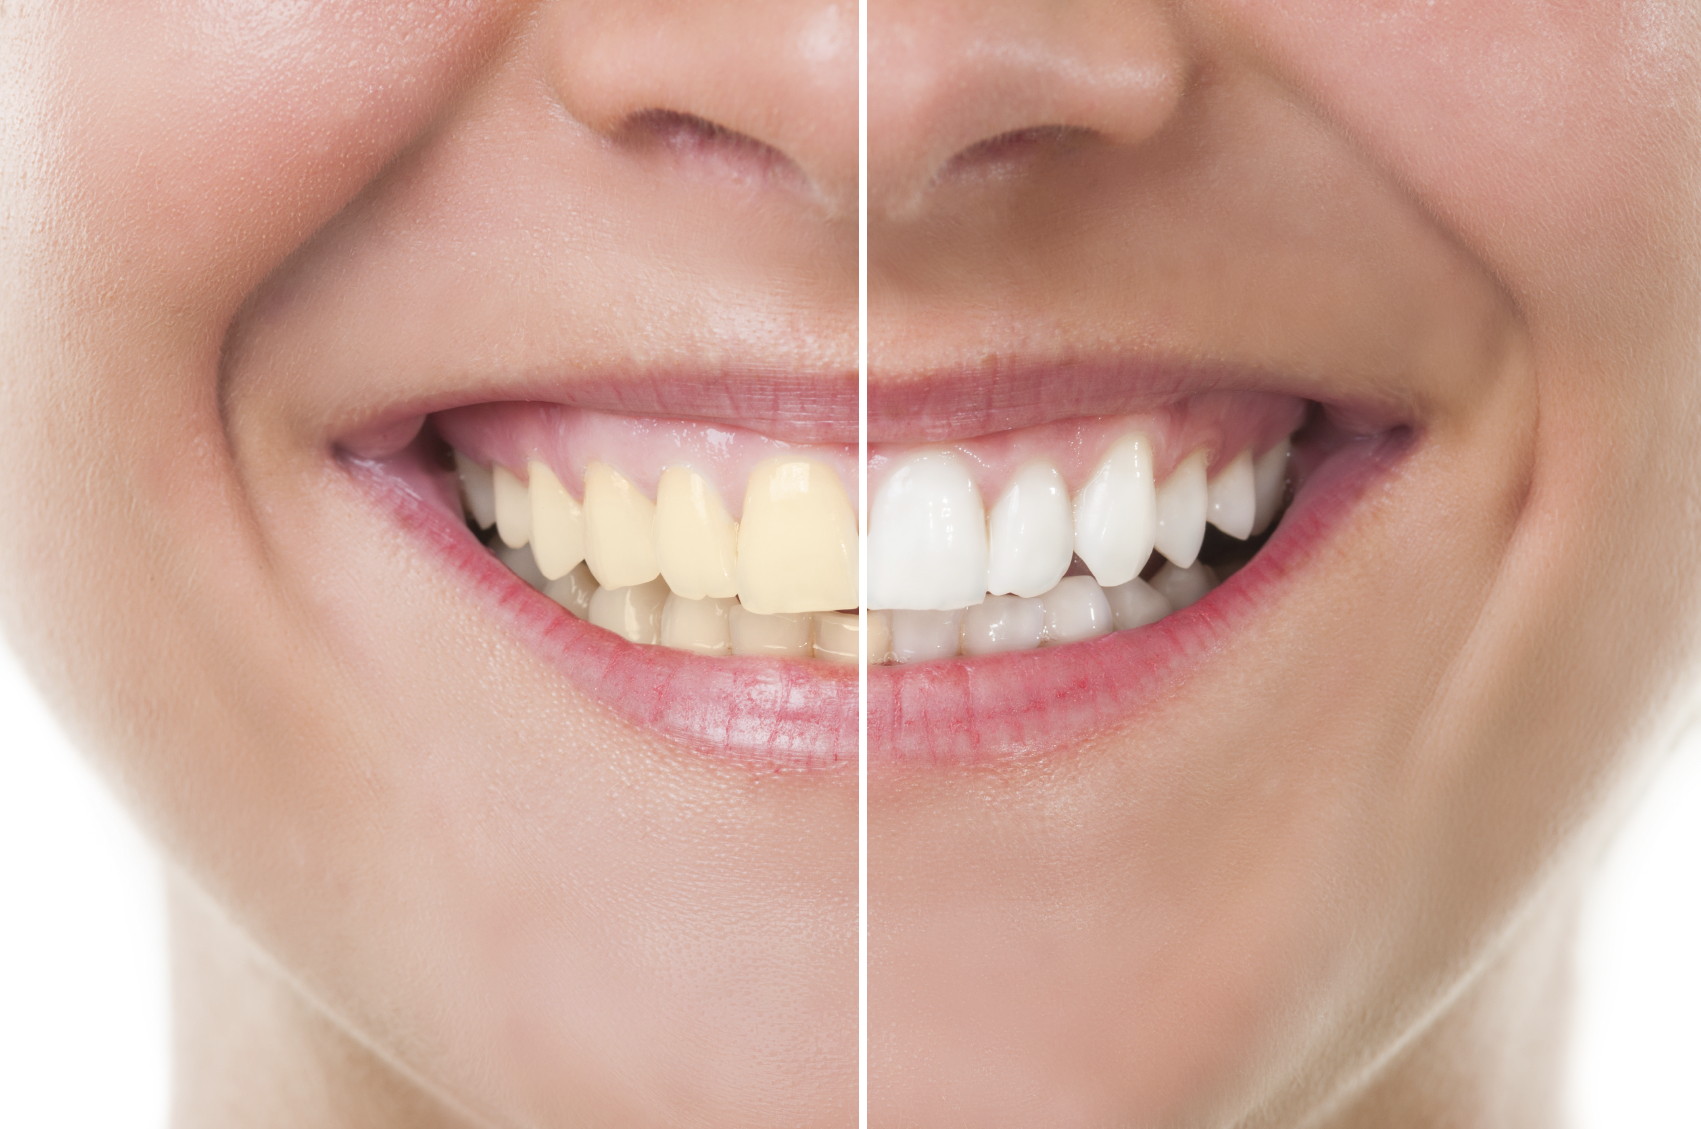 The Real Scoop on Whitening Your Teeth